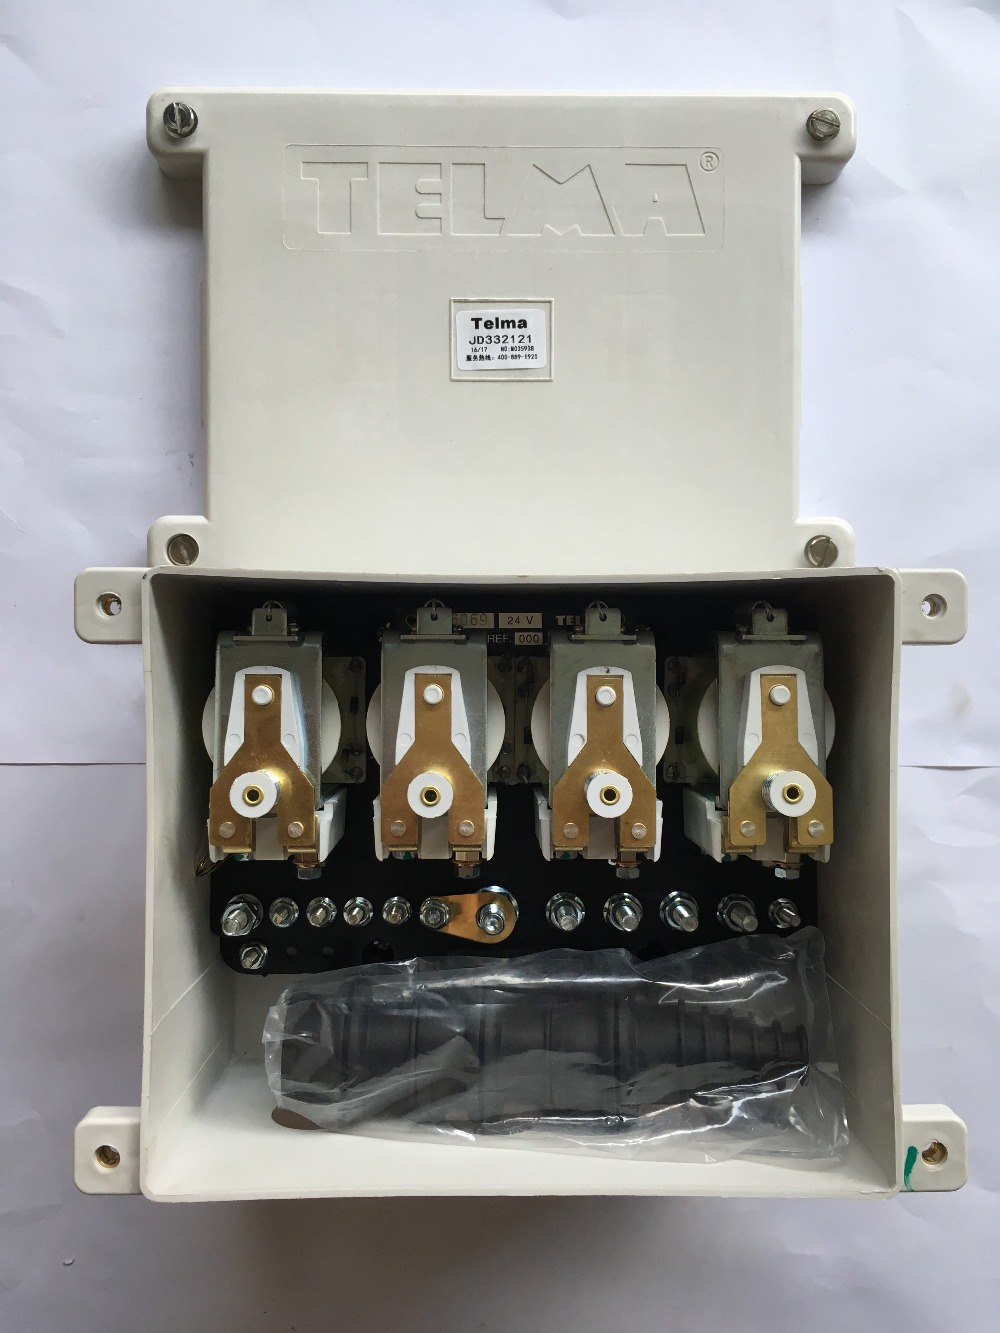 small resolution of retarder relay jd332121 with four stalls for telma retarder for yutong kinglong zhongtong bus free shipping in sensors switches from automobiles